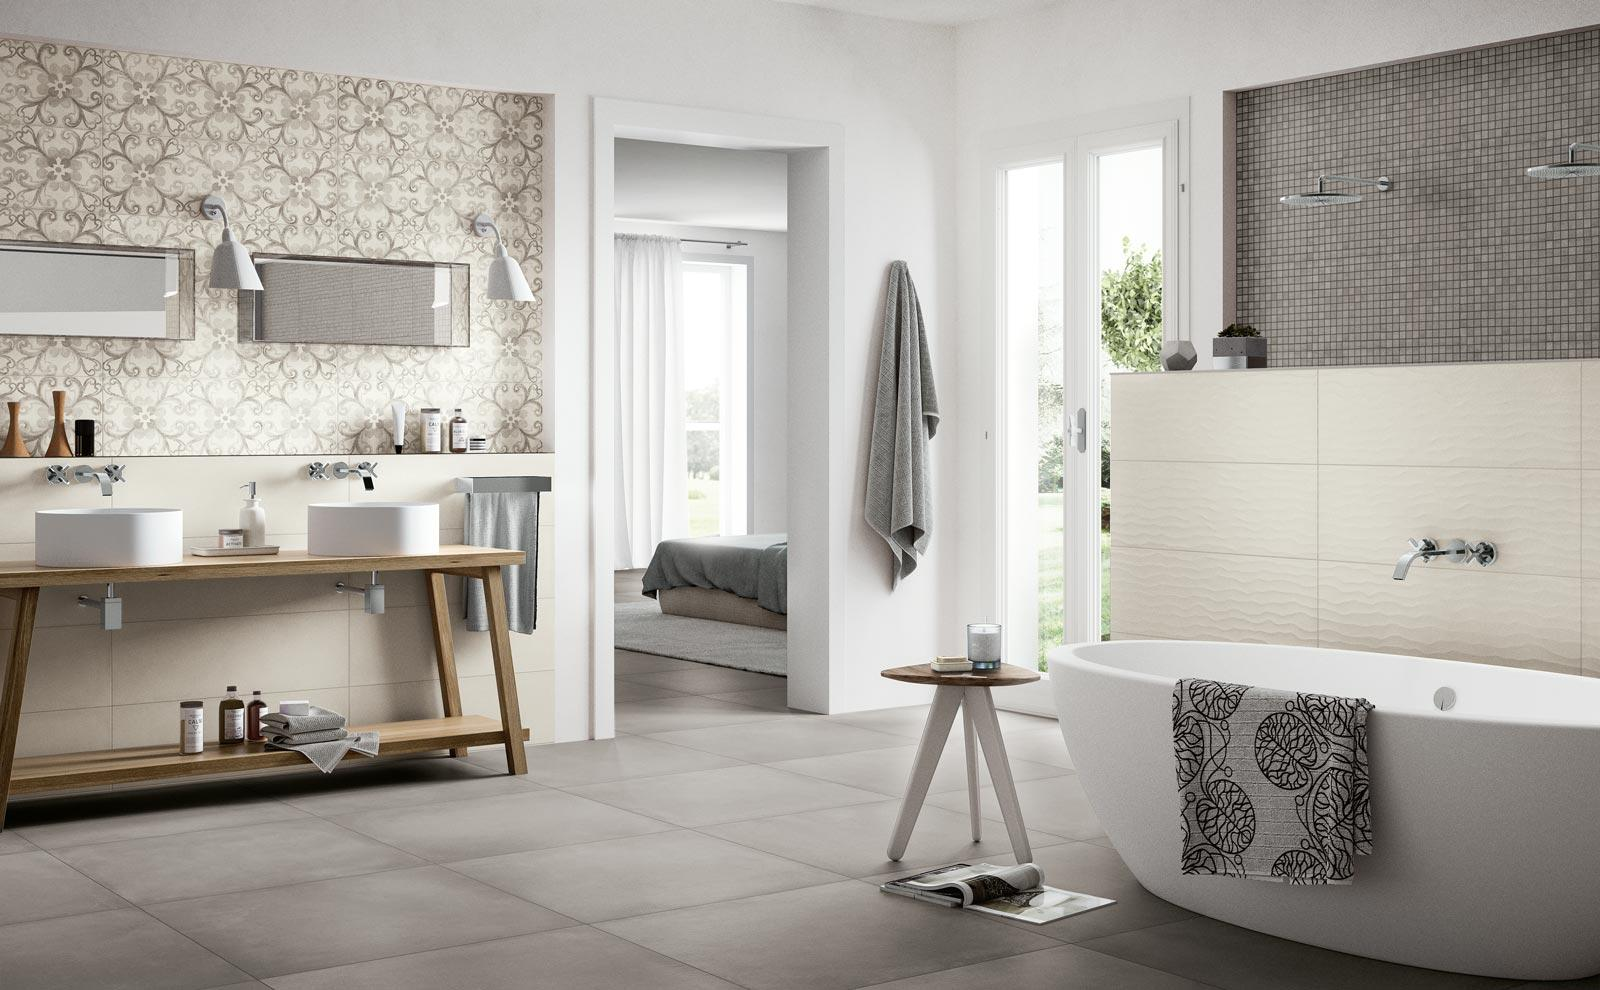 Rewind Wall Collection: terracotta and concrete effect ceramic tiles ...